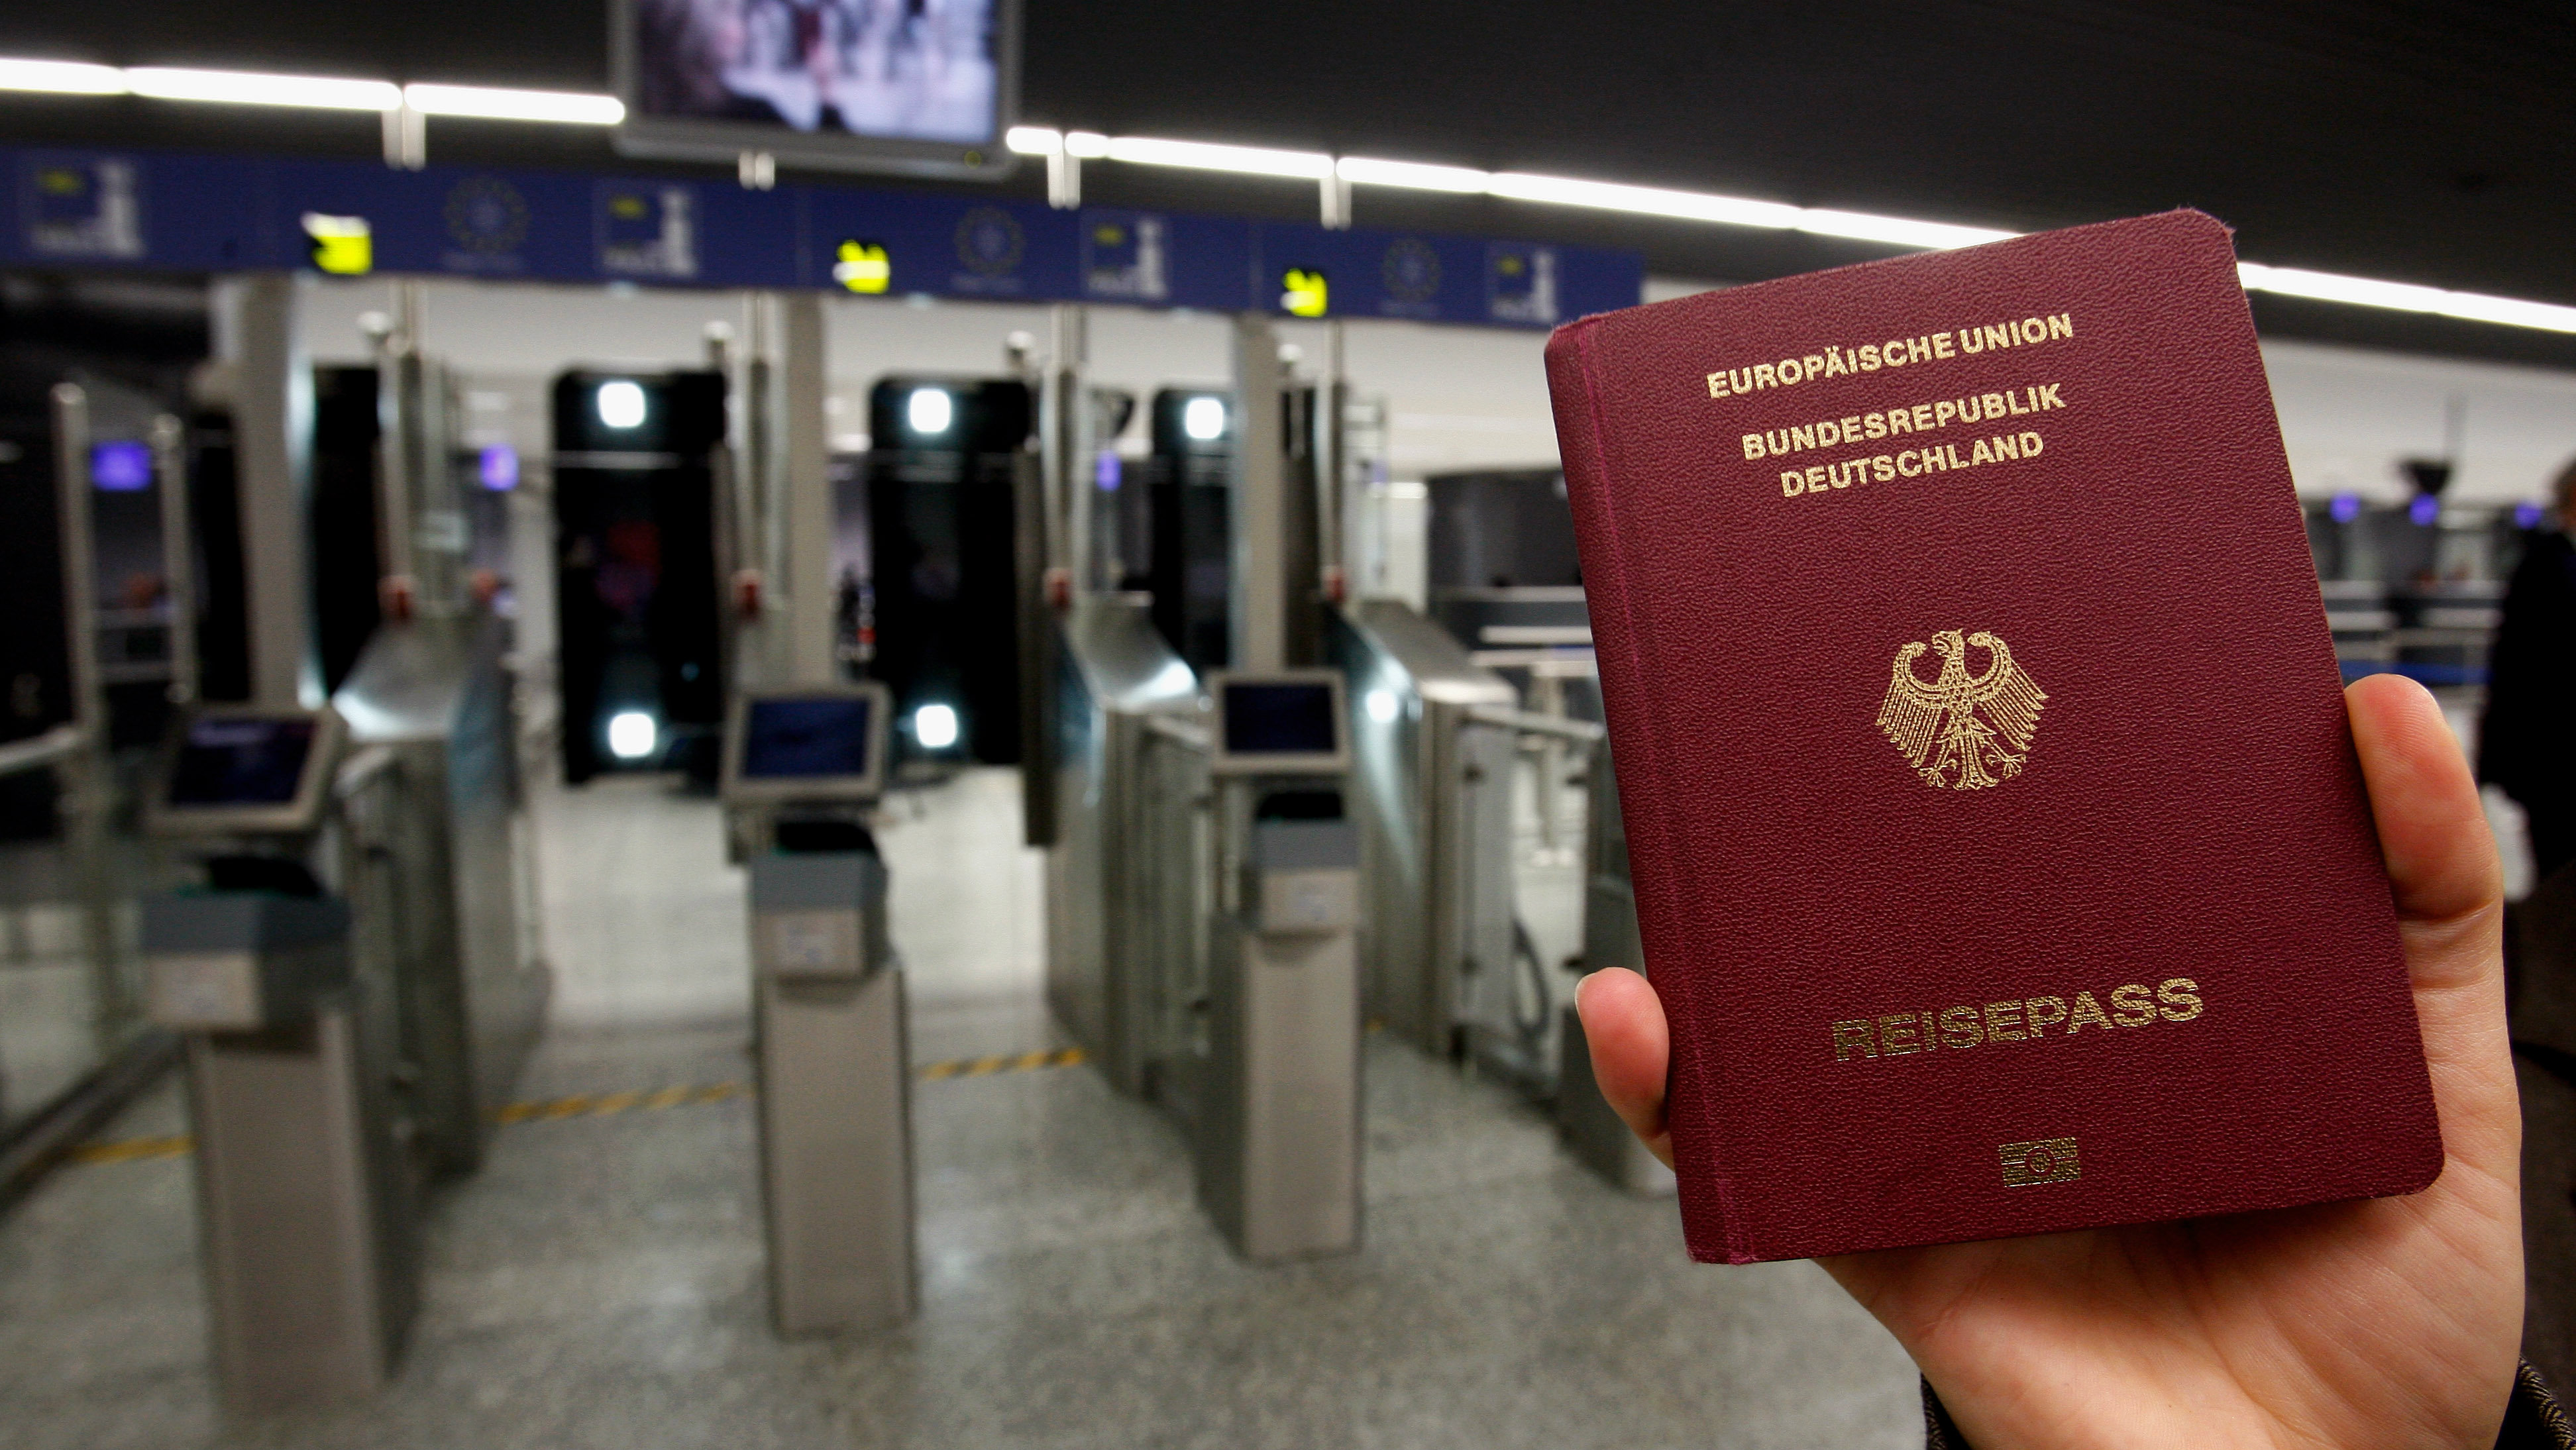 FRANKFURT AM MAIN, GERMANY - OCTOBER 16: A woman holds up passport during the presentation of the new automated border control system easyPass at Frankfurt International Airport on October 16, 2009 in Frankfurt am Main, Germany. EasyPass system automatically scans the biometric data of a passenger and compares it to the data in the passenger's e-passport, which has to be put into a document reader at the border control. (Photo by Alex Grimm/Getty Images)